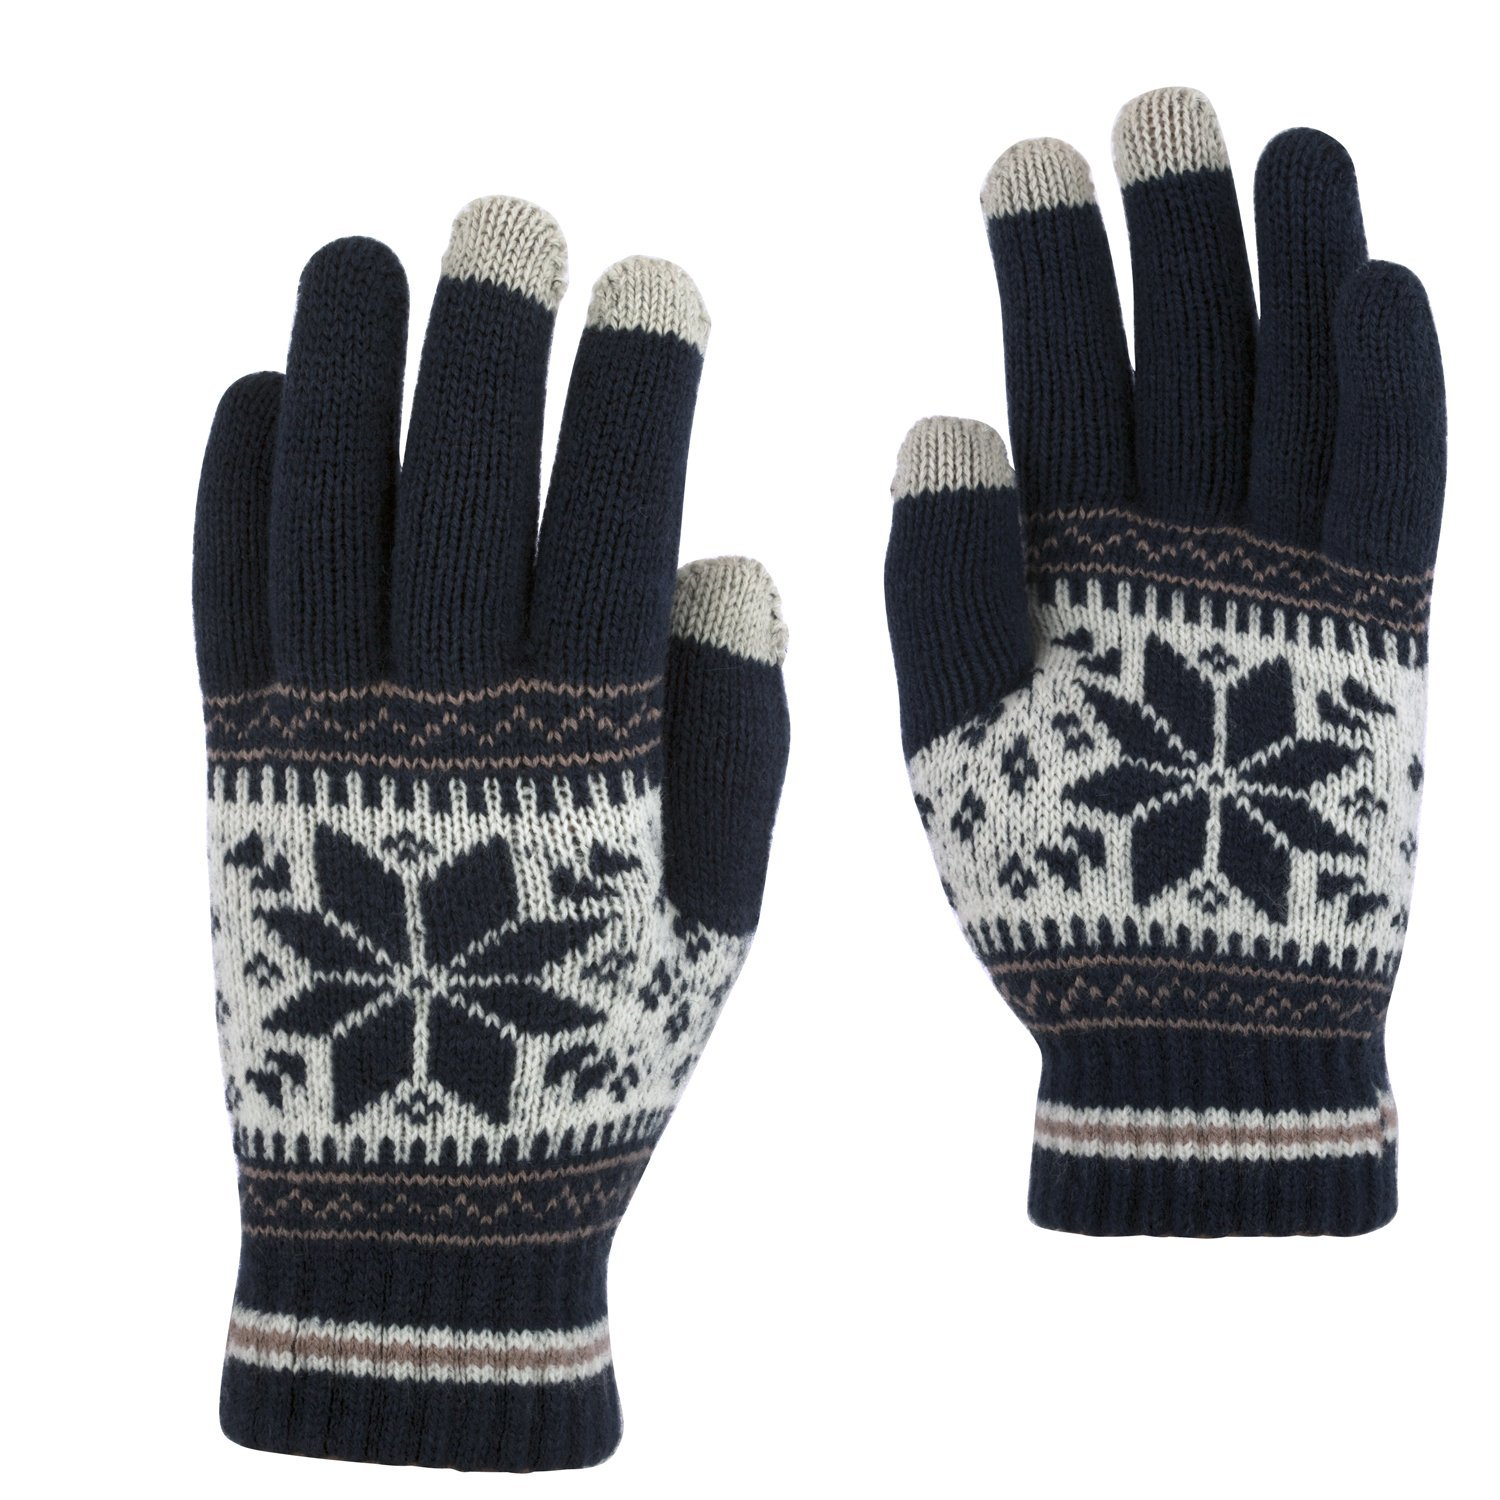 Belle Donne - Women's Touch Screen Gloves - Snow Flakes - Navy